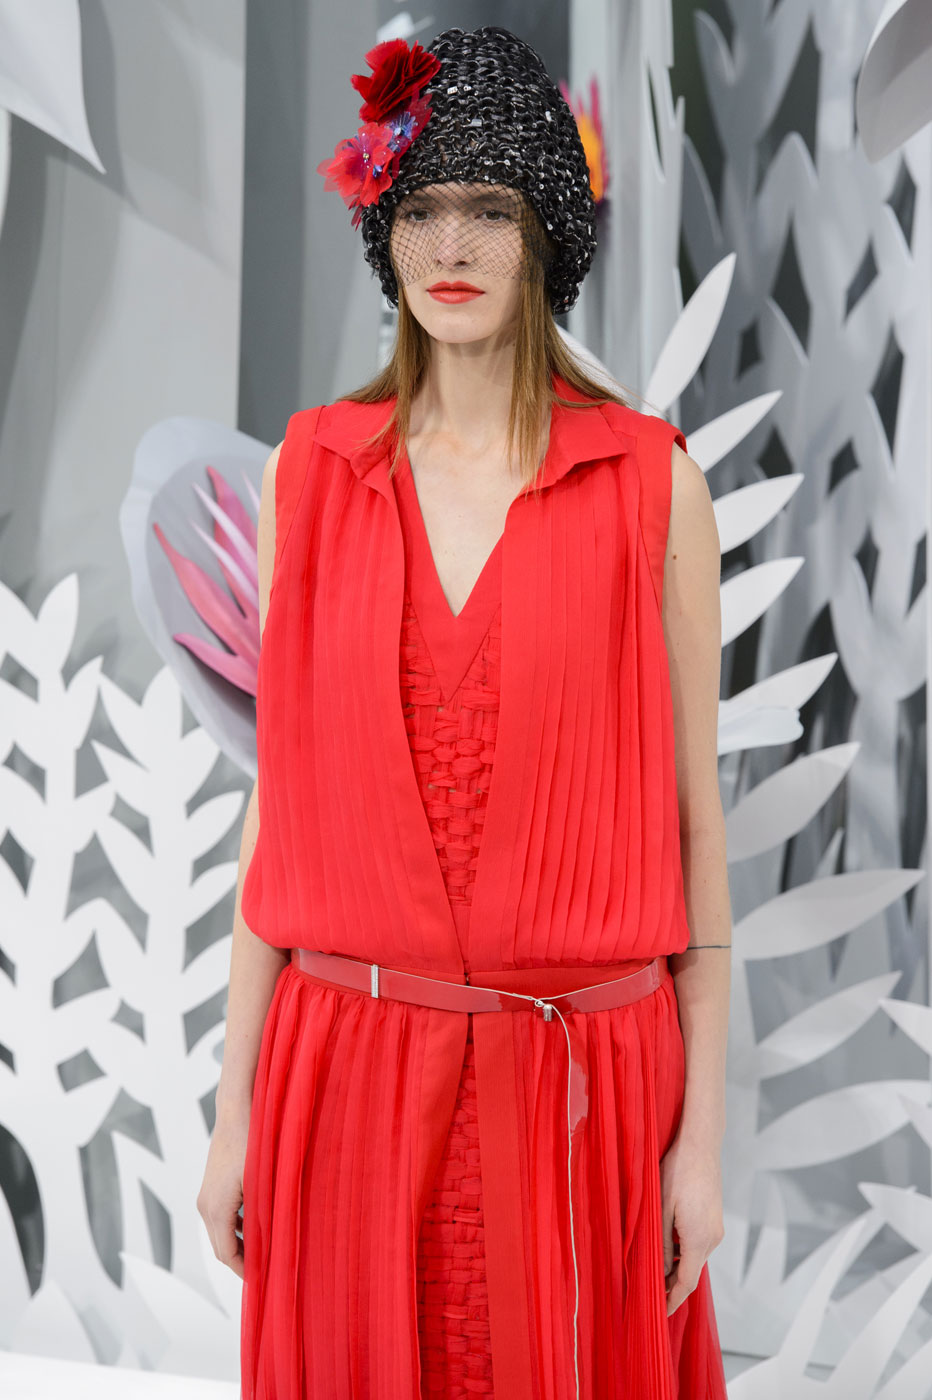 Chanel-fashion-runway-show-haute-couture-paris-spring-summer-2015-the-impression-070